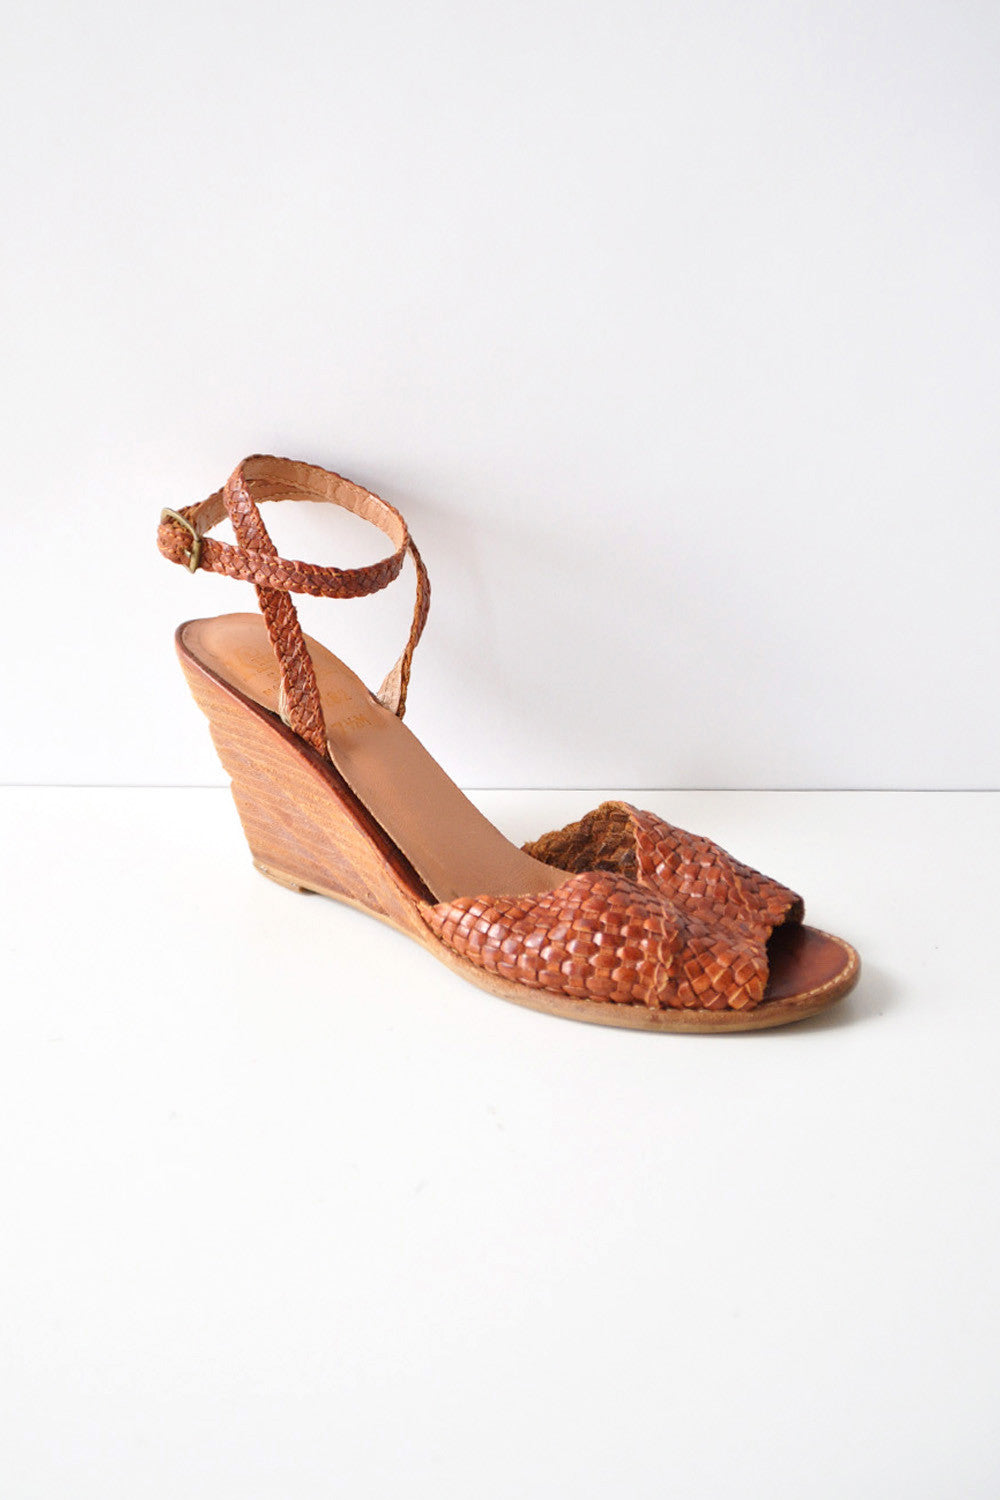 Kinney Braided Wedge 7-7 1/2